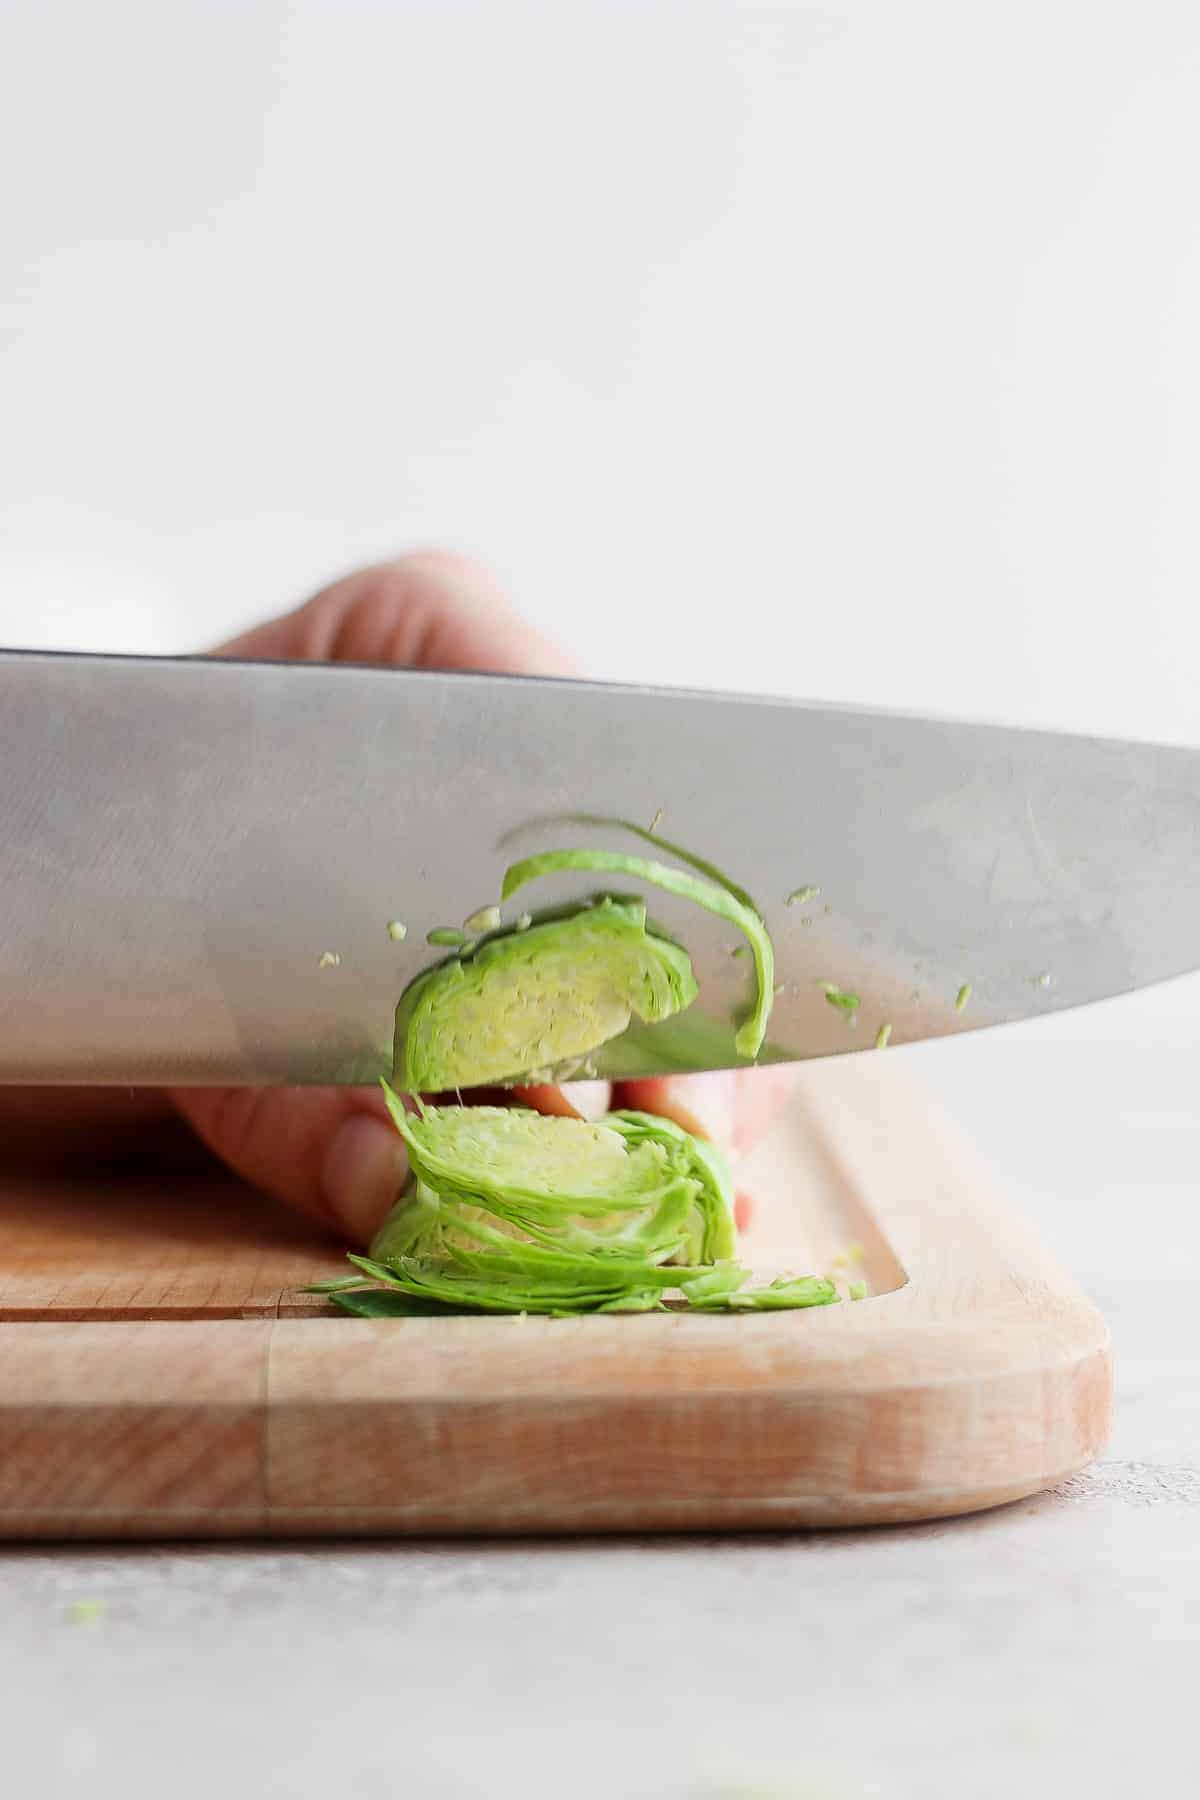 Chef's knife cutting a brussel sprout